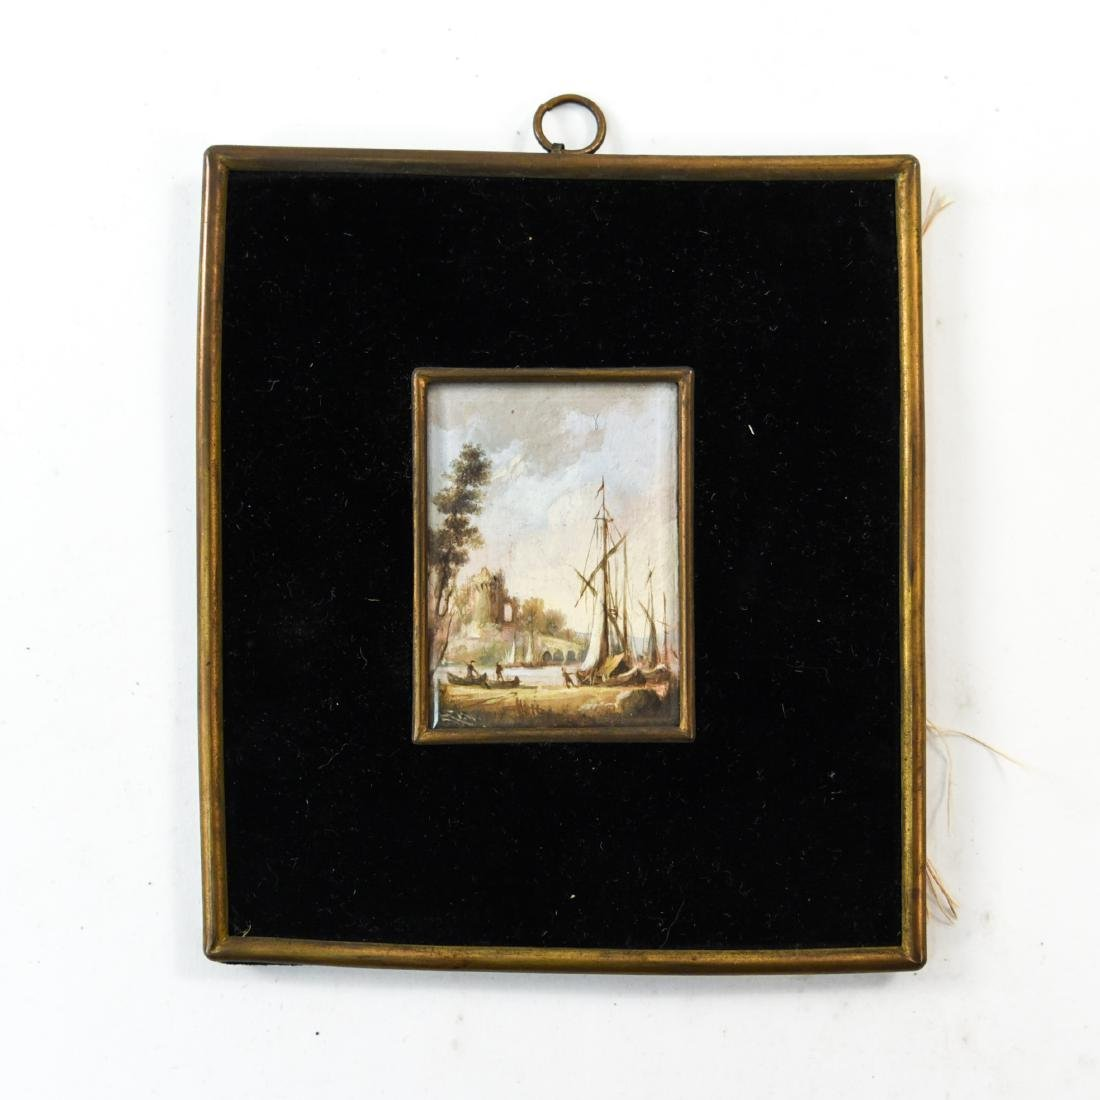 MINIATURE PAINTING OF A SEAPORT